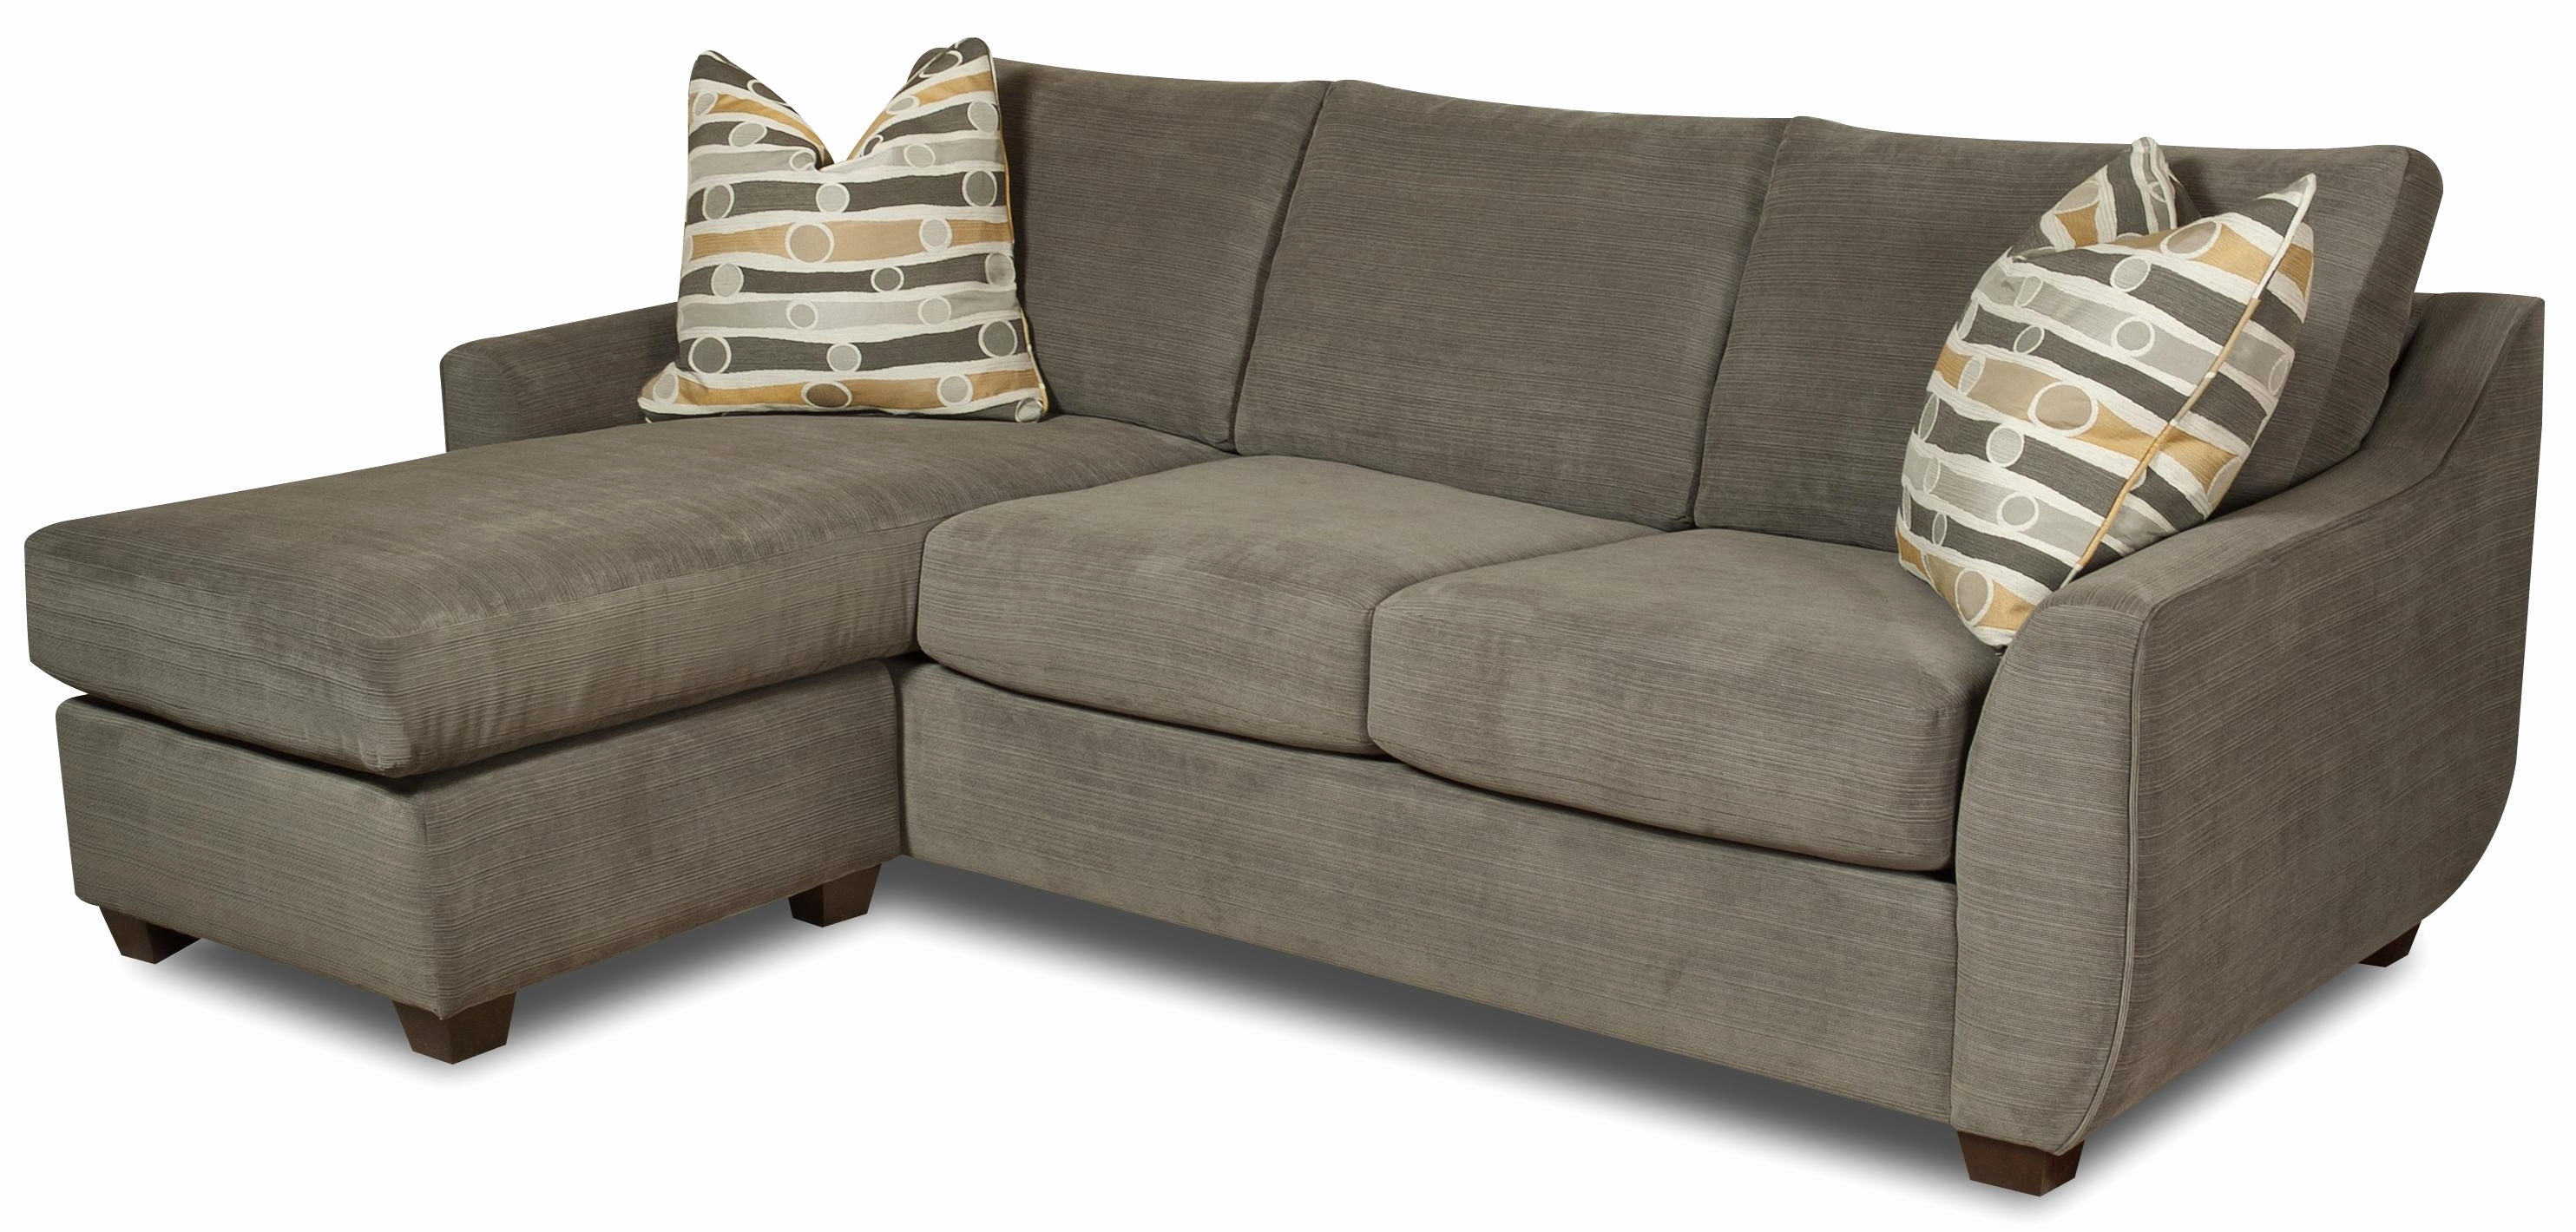 Well Known Elegant Sectional Sofas Intended For Furniture : Convertible Sectional Sleeper Sofa Elegant Bauhaus In (View 4 of 15)